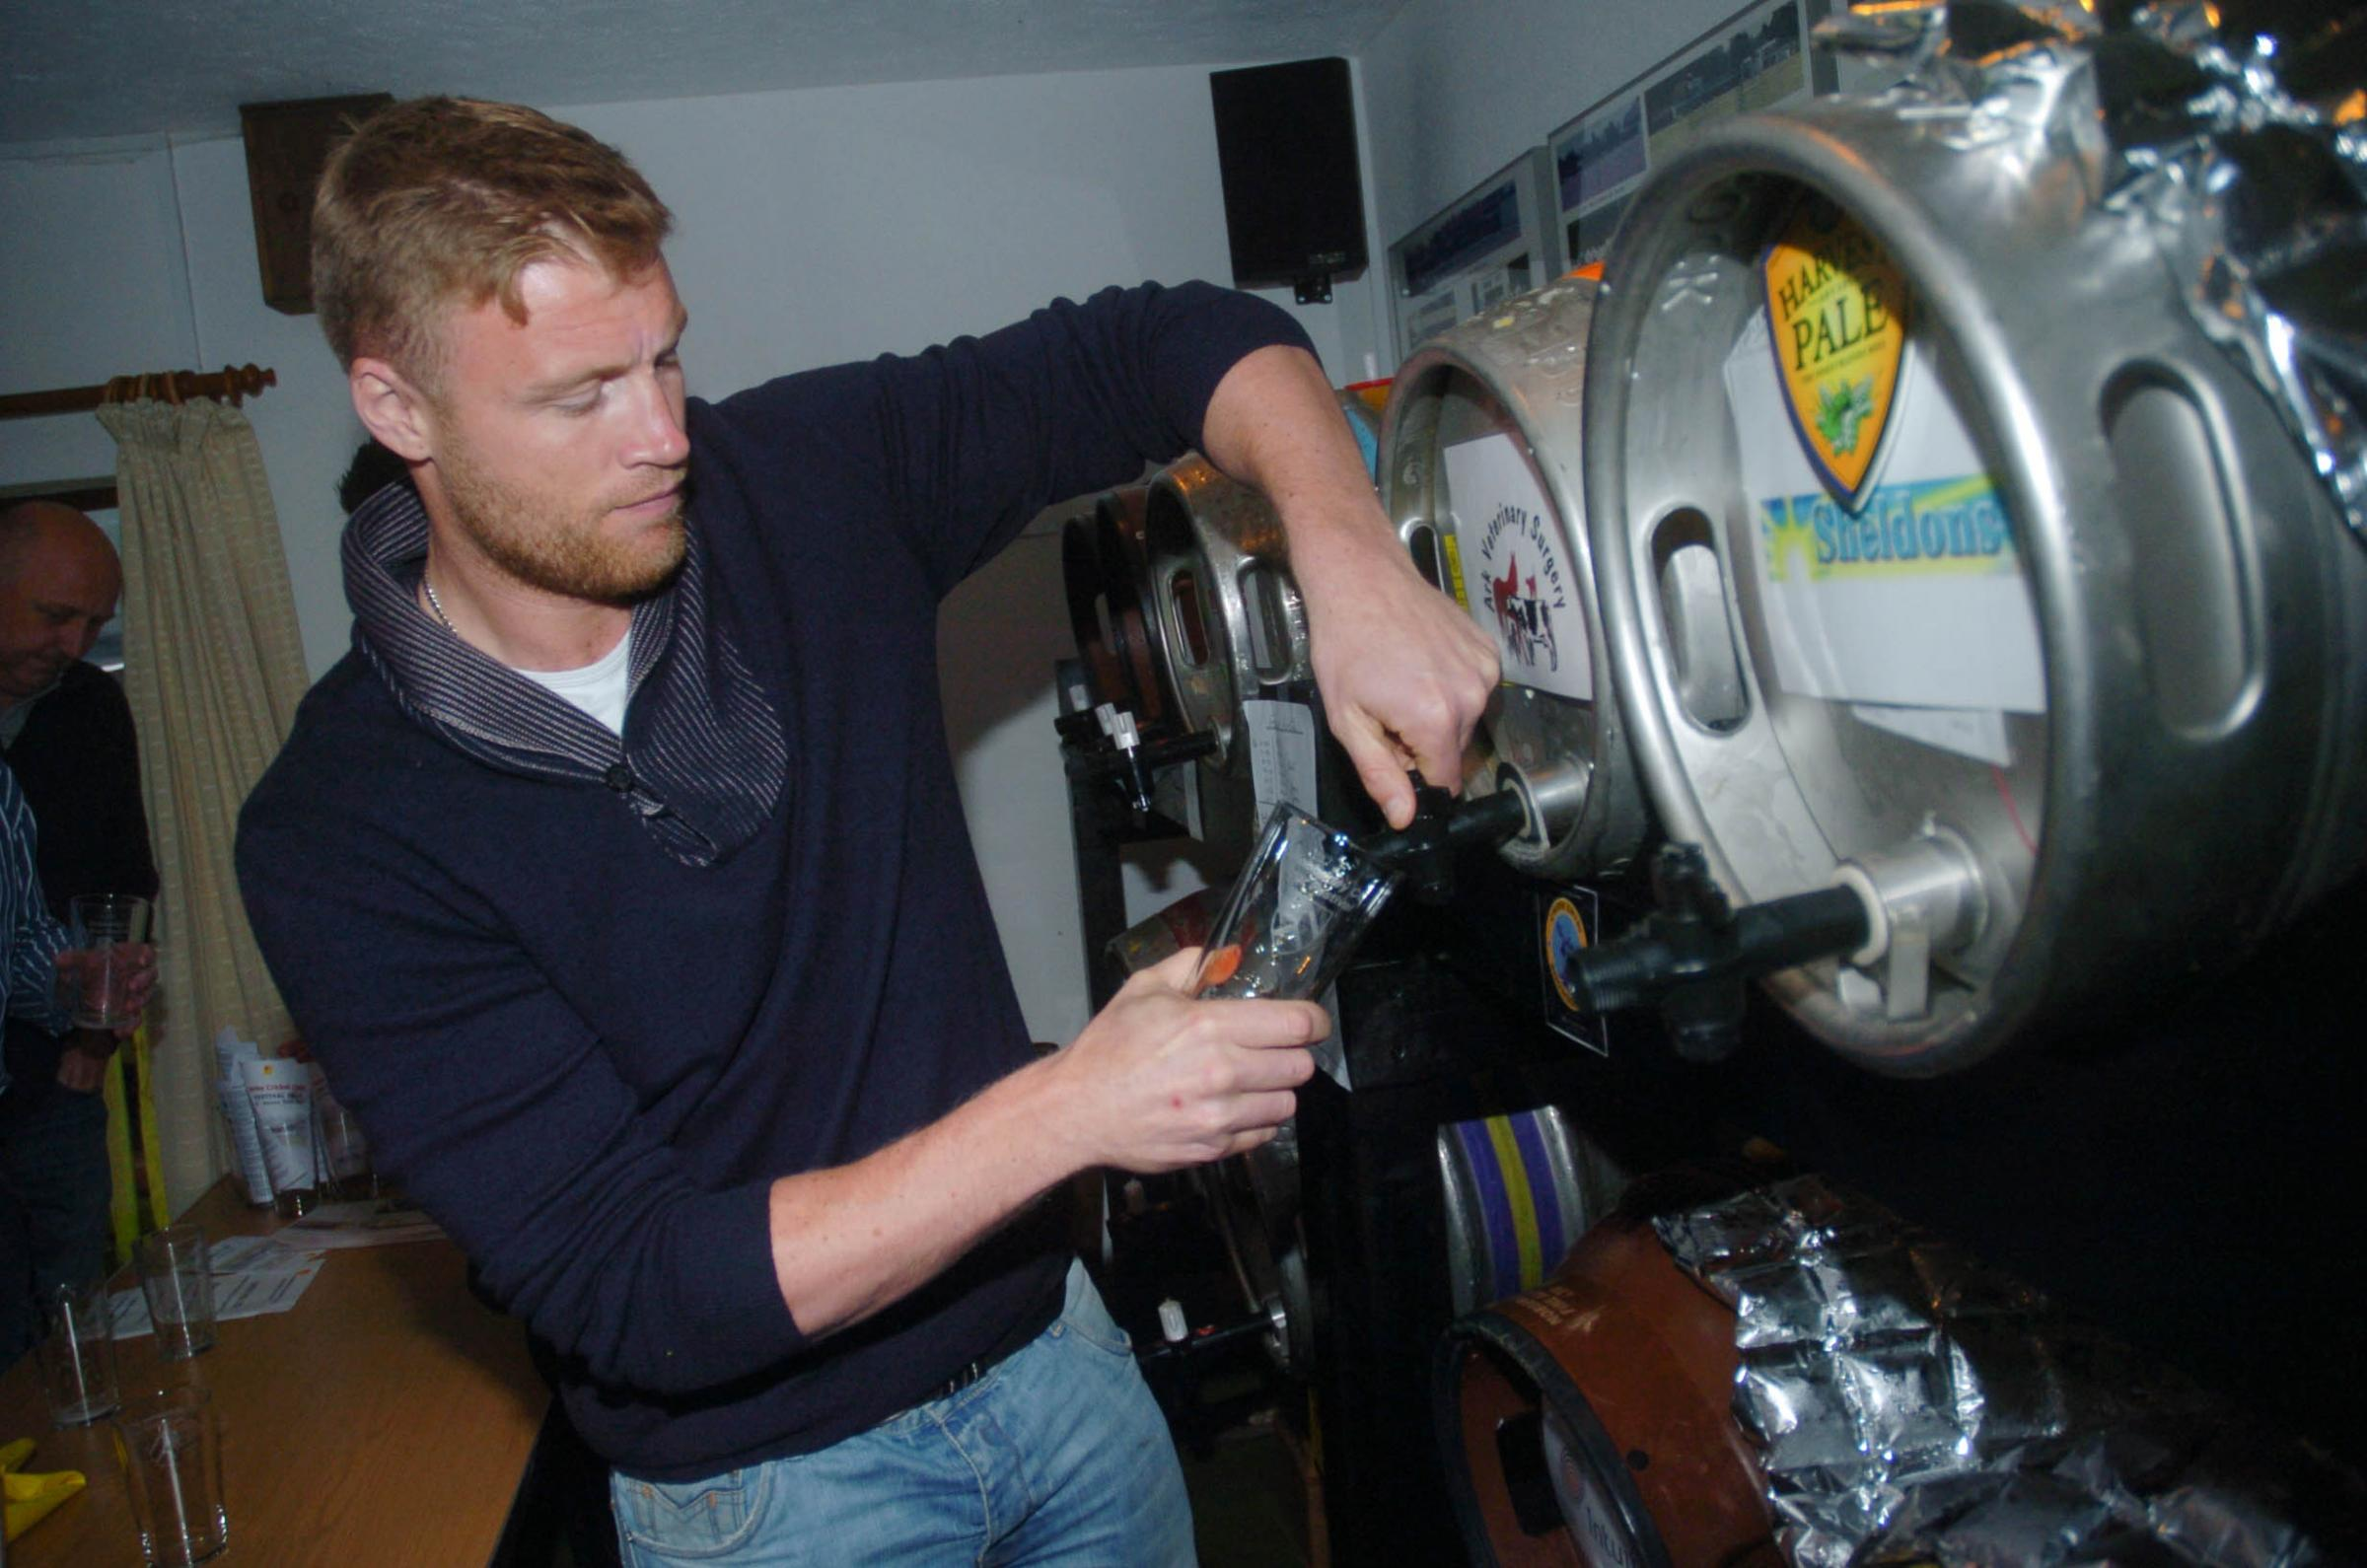 Knutsford Guardian: Andrew Flintoff is guest of honour at beer festival